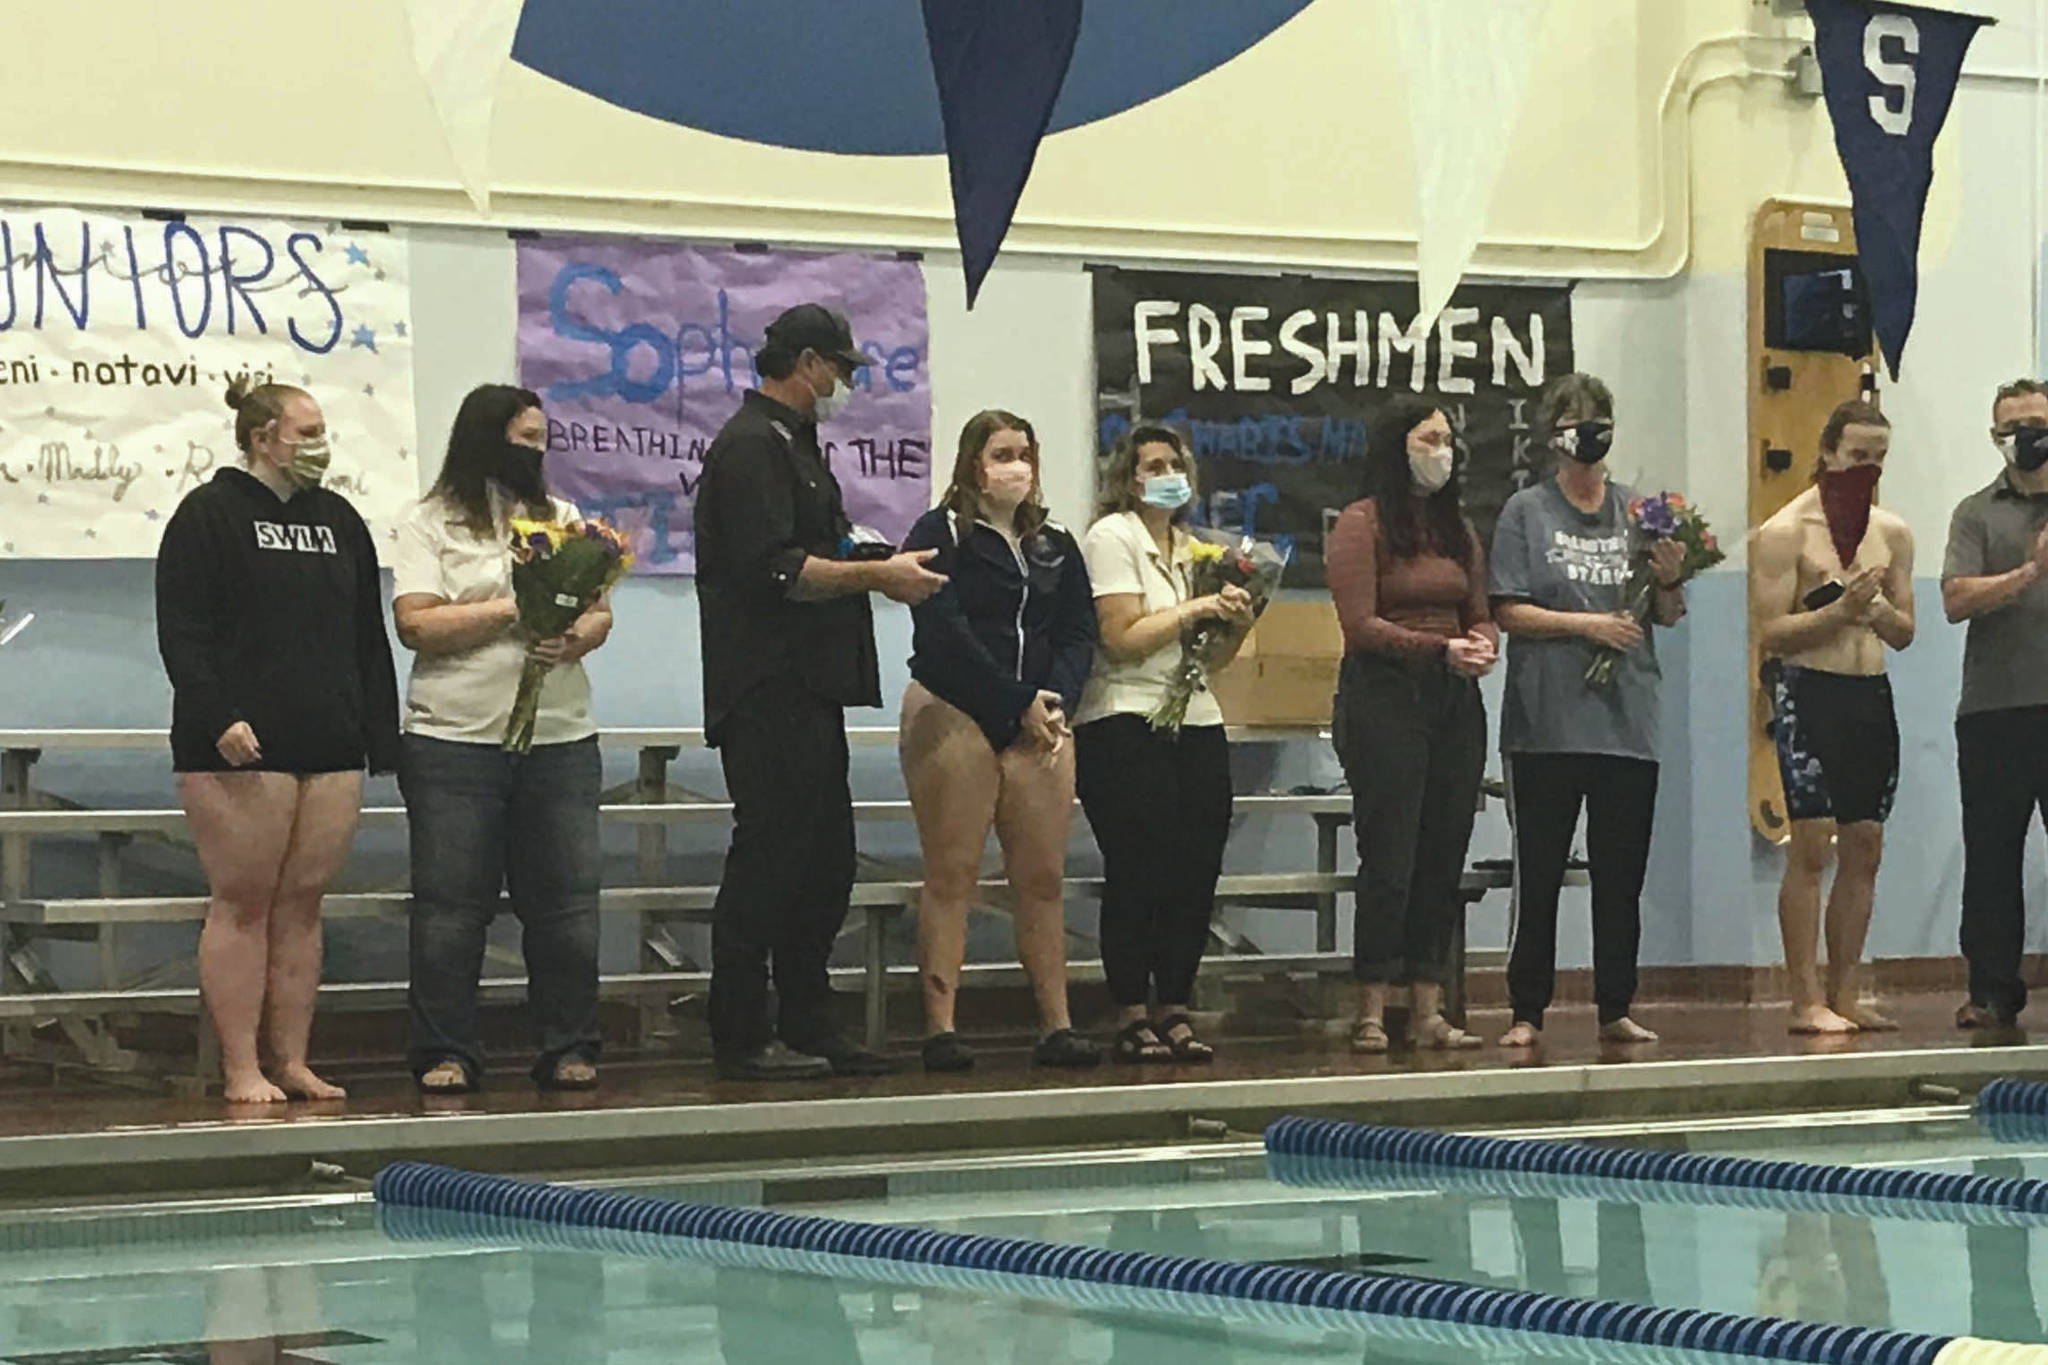 Soldotna High School senior swimmers are honored Oct. 30, 2020, at Soldotna High School. The seniors, from left to right, are Nathan Pitka, Emma Snyer, Deloma Watkins, Kat Gross and Brandon Christenson. (Photo provided by Luke Herman)